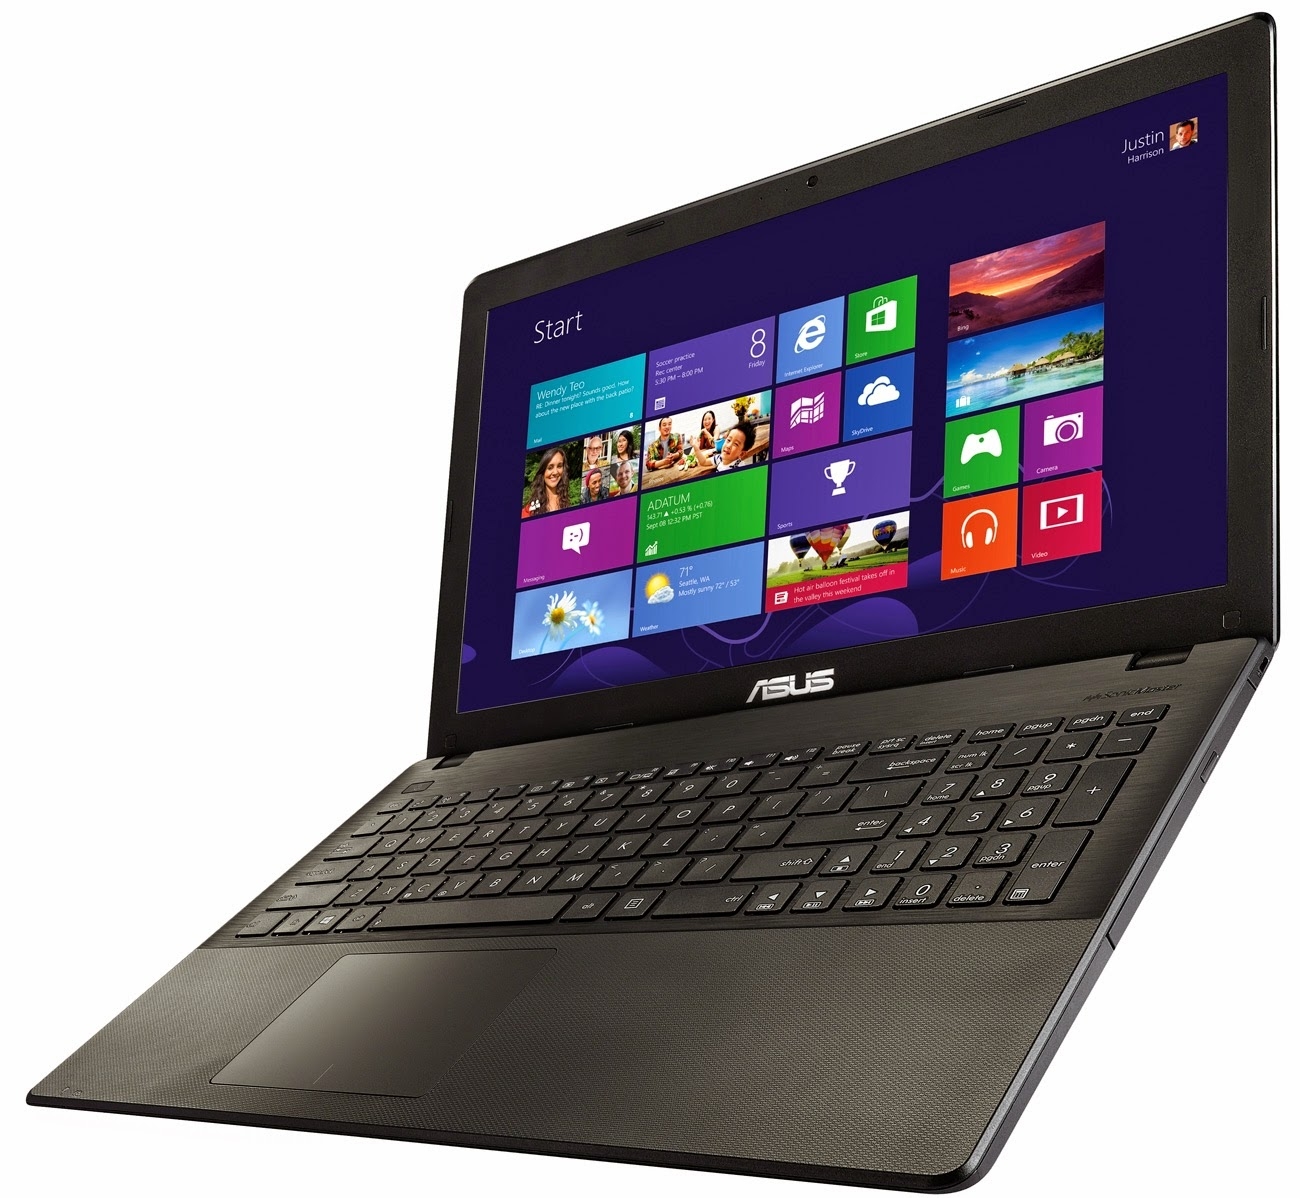 Asus X551M Laptop, Price, Specification, Unboxing & Review